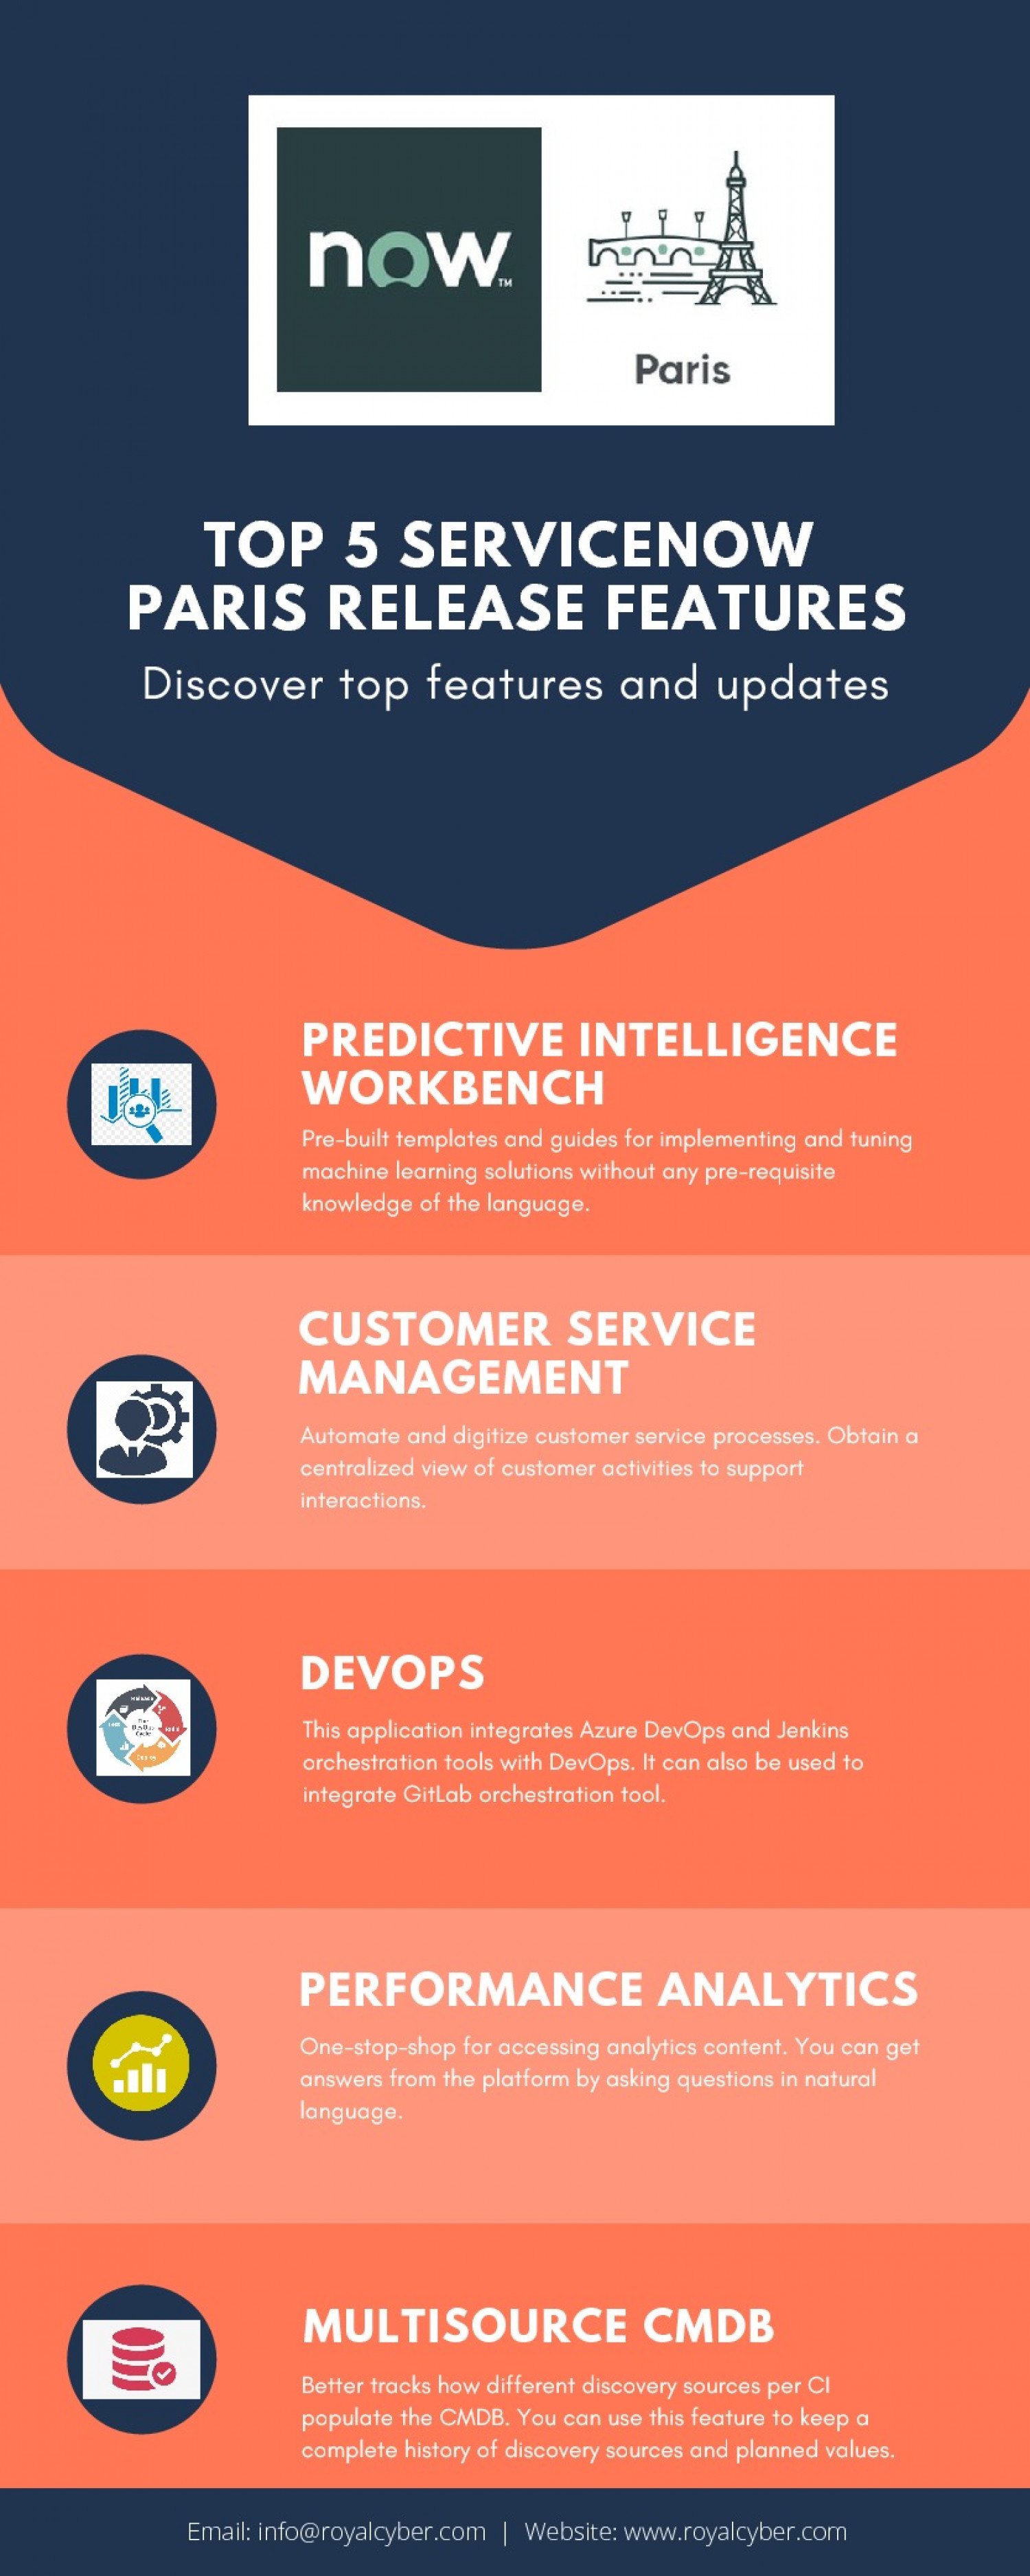 Top 5 ServiceNow Paris Release Features Infographic